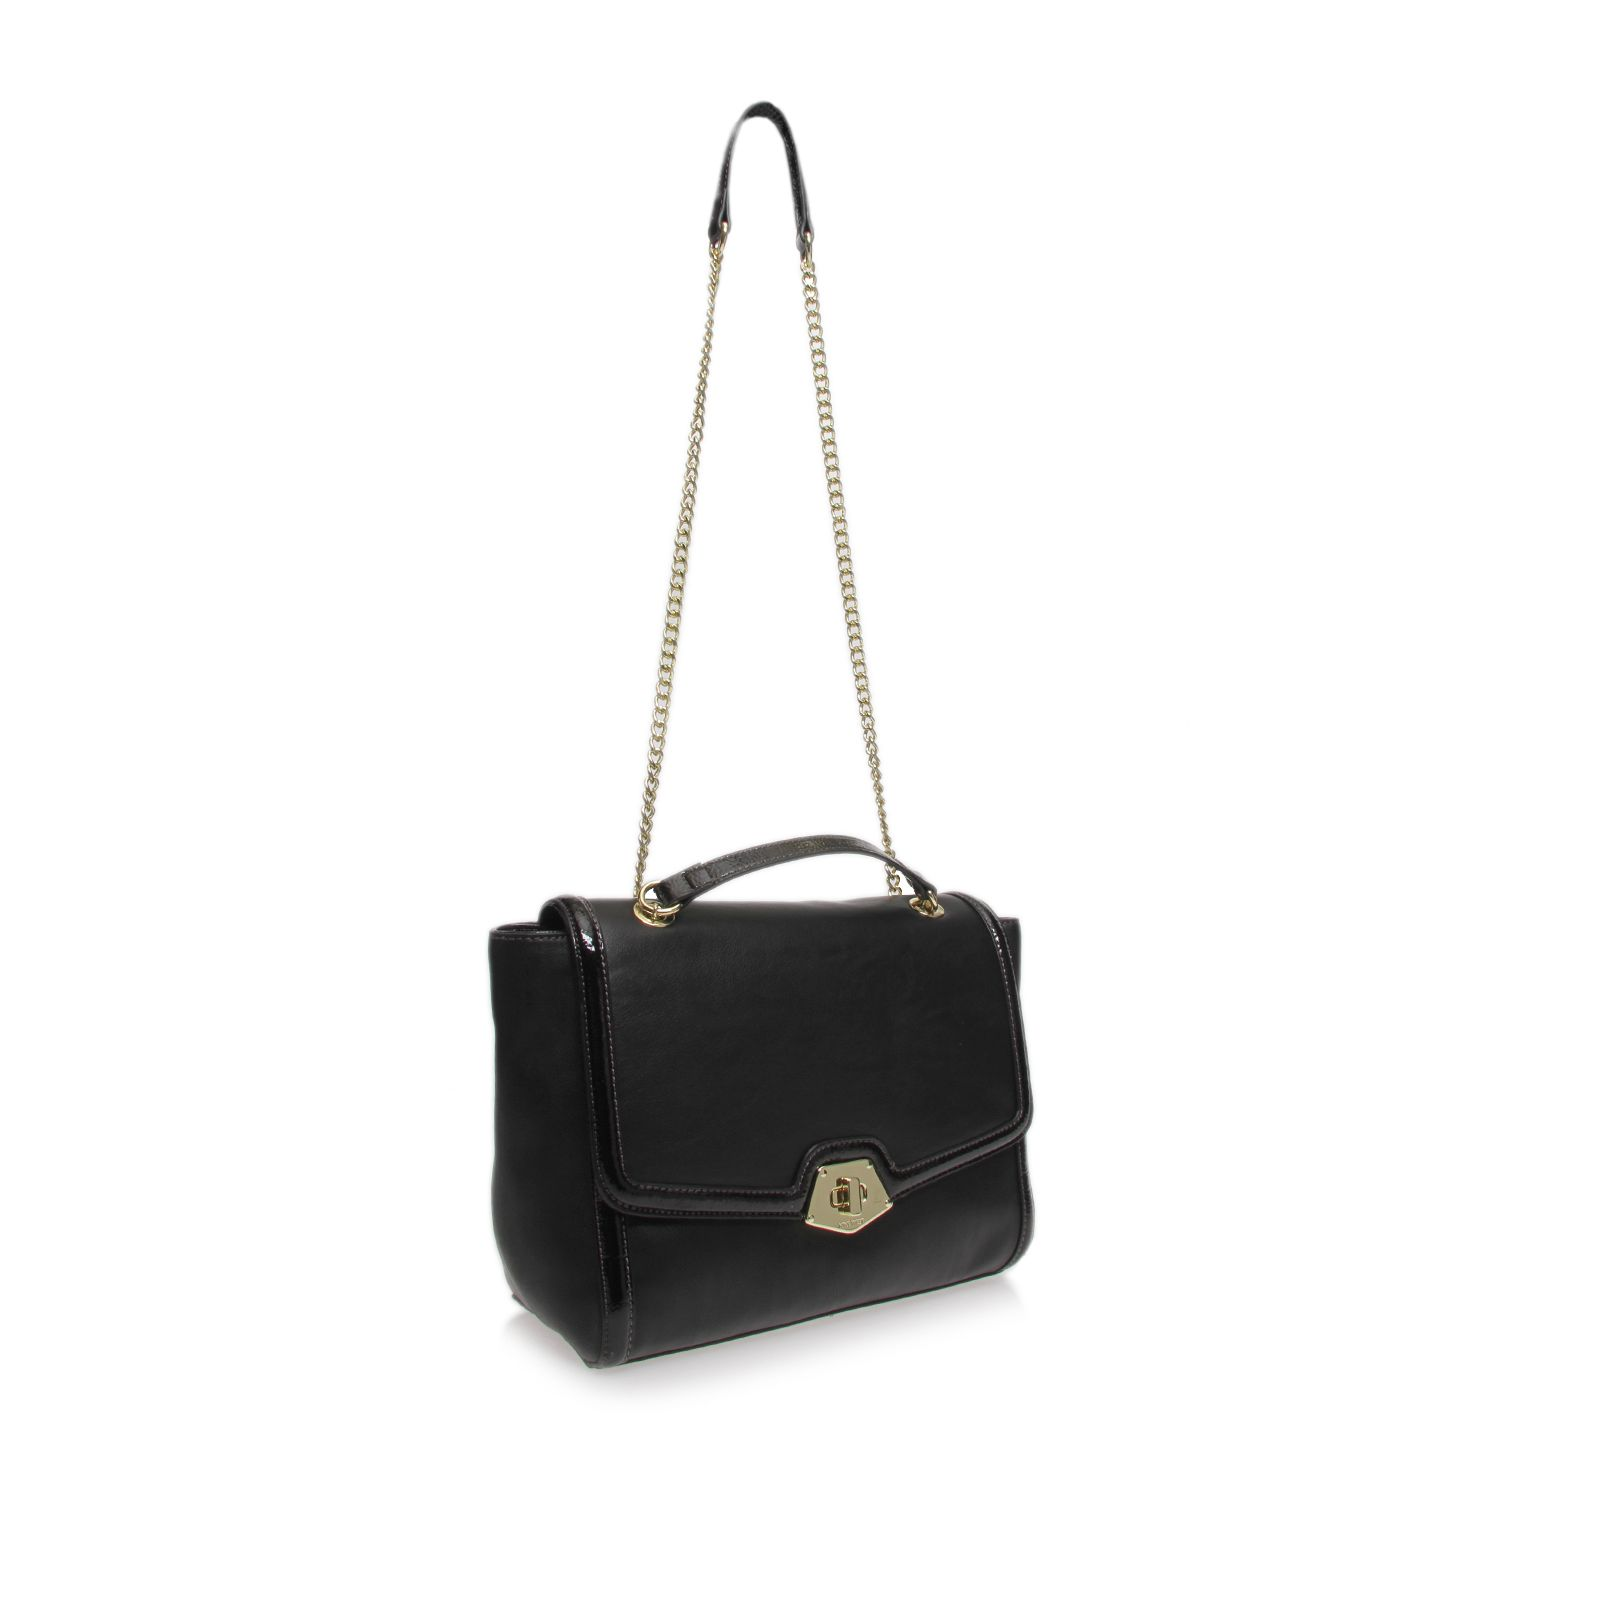 Tailored black handbag